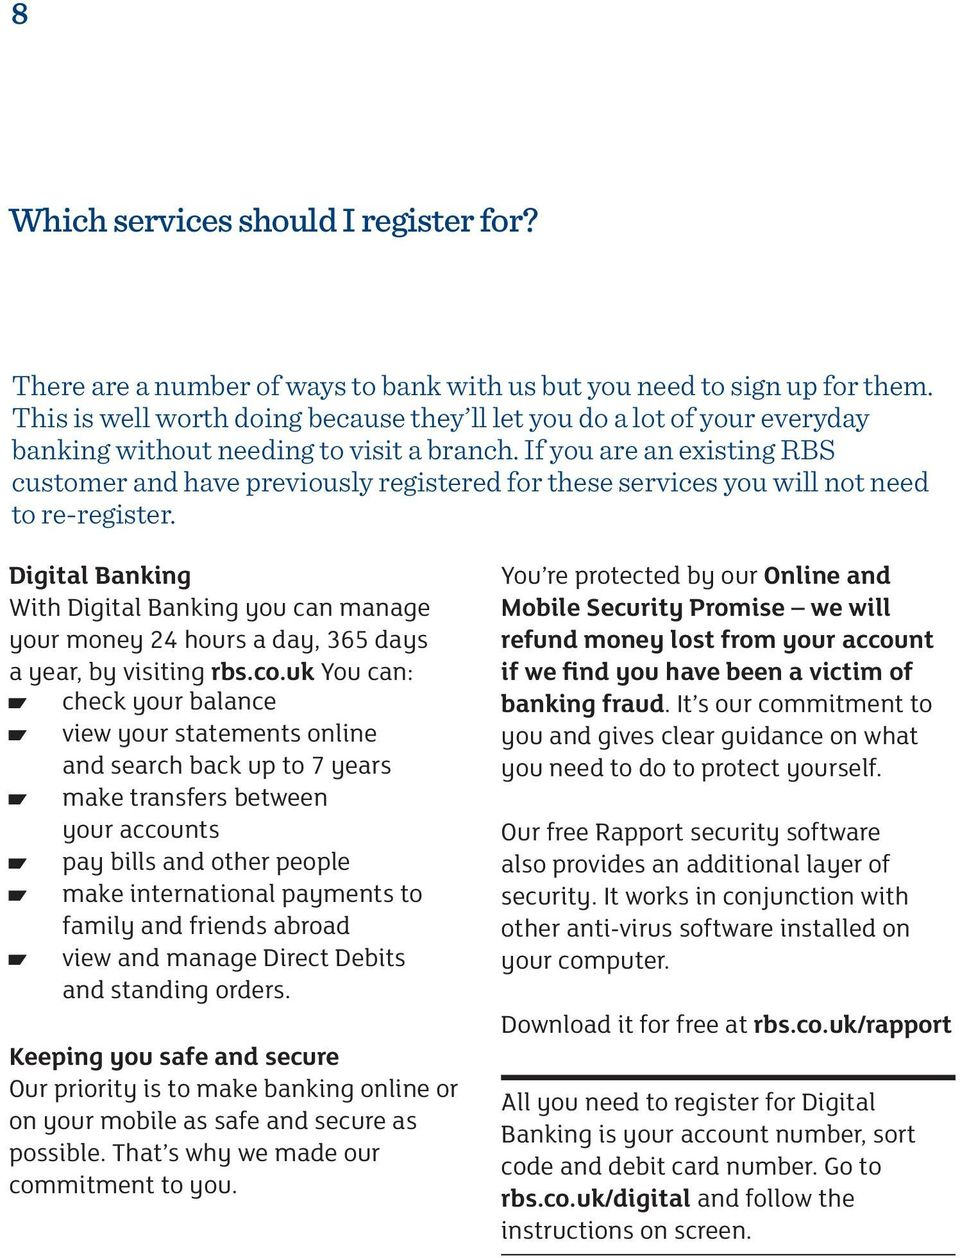 If you are an existing RBS customer and have previously registered for these services you will not need to re-register.